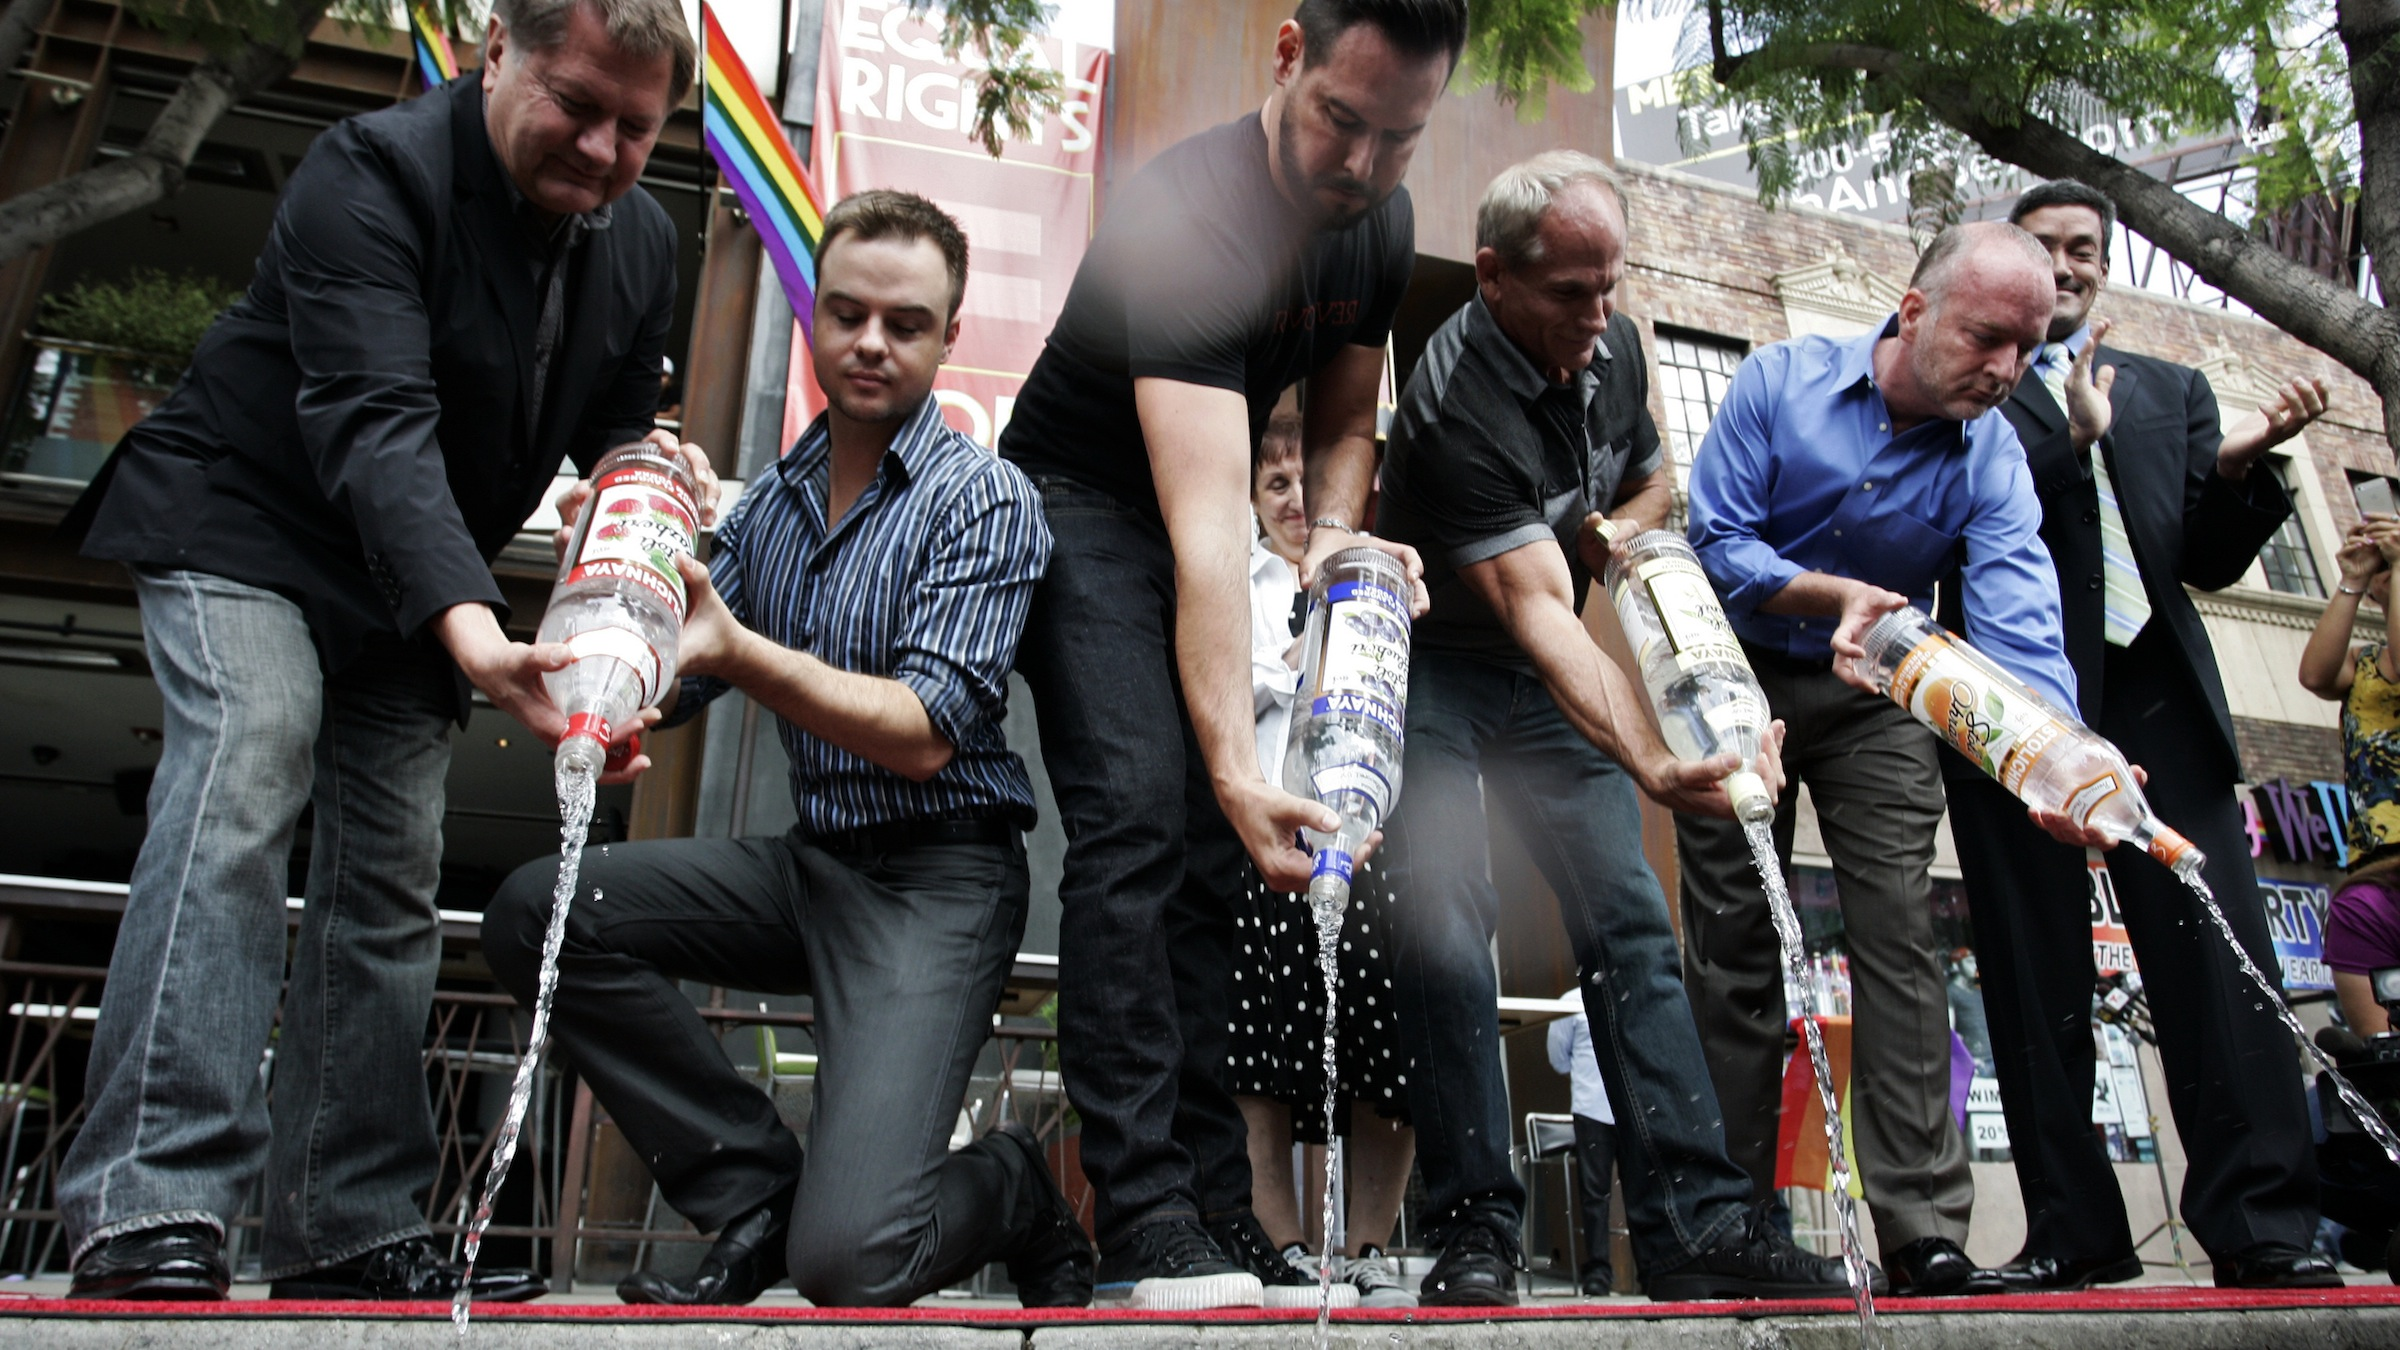 Michael Niemeyer (L-R), Matthew Ervin, Alfredo Diaz, Richard Grossi, Rodney Scott, and John Duran empty Russian vodka bottles filled with water, into the gutter during a news conference at Micky's nightclub in West Hollywood, California August 1, 2013. Bar owners, city officials and members of lesbian, gay, bisexual, and transgender (LGBT) organizations participated in the event to announce a boycott of Russian vodkas to protest new laws in Russia targeting homosexuals, according to a news release by the organizers. REUTERS/Jonathan Alcorn (UNITED STATES - Tags: POLITICS SOCIETY BUSINESS TPX IMAGES OF THE DAY) - RTX127LI